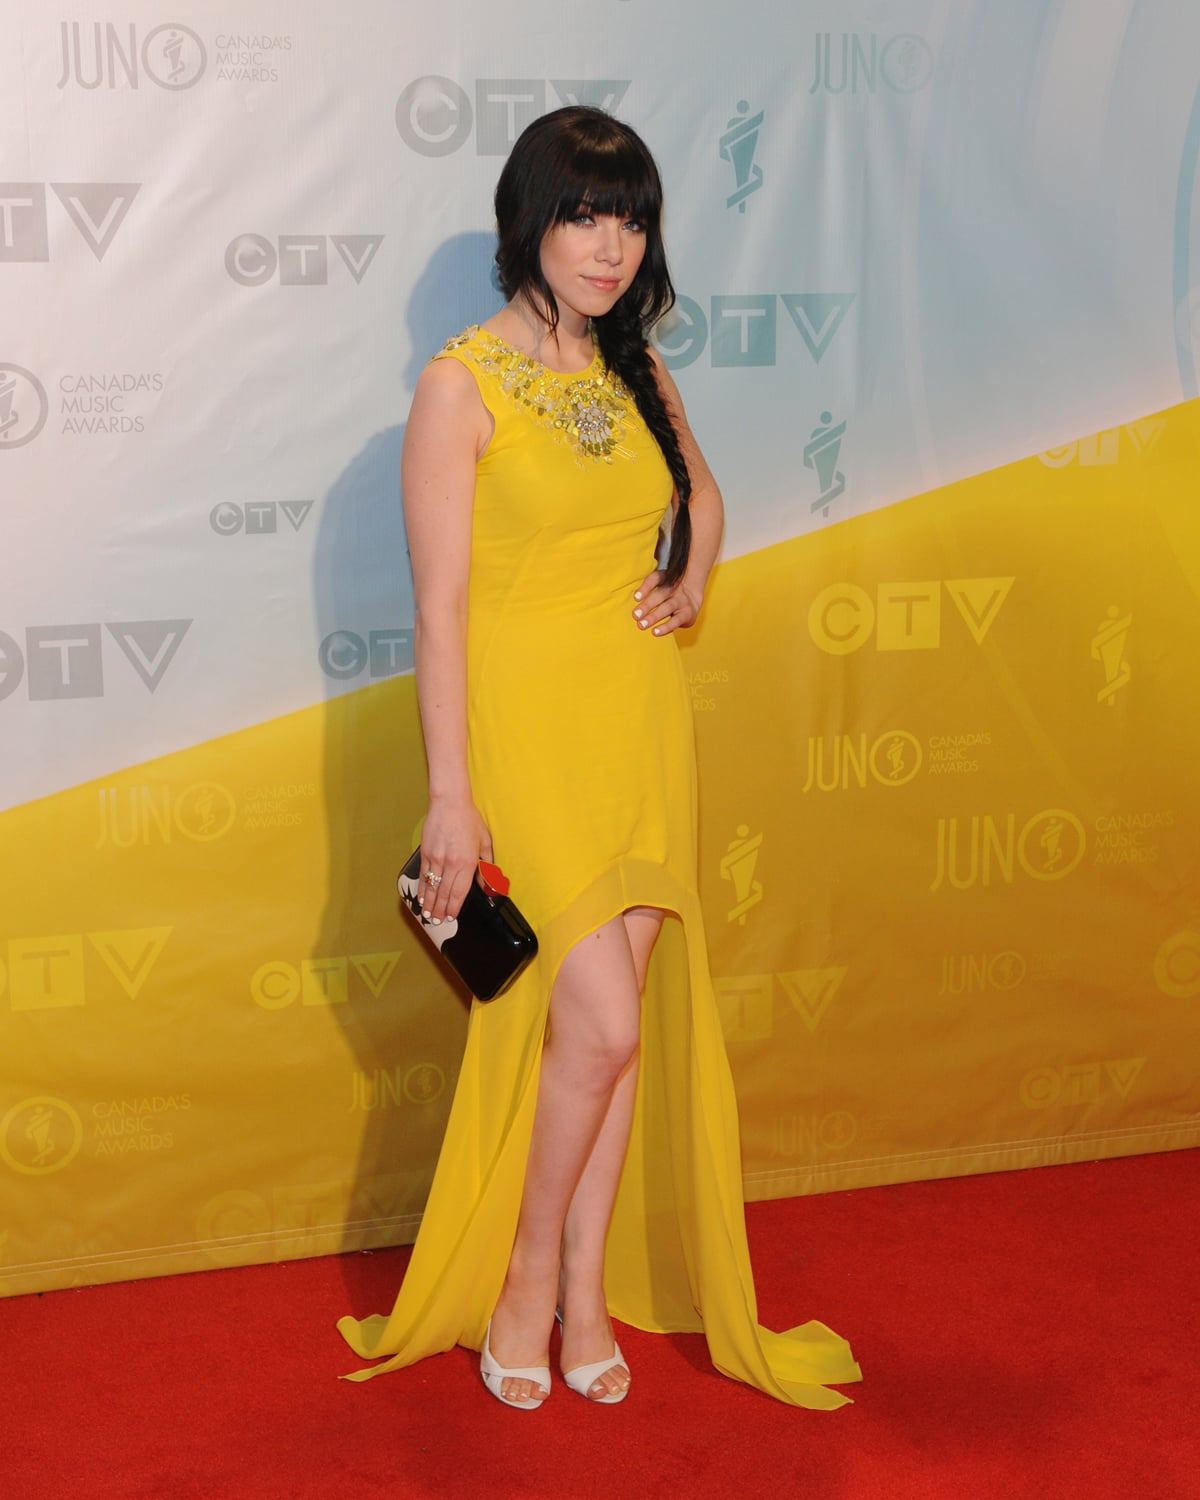 Carly Rae Jepsen walked the red carpet at the 2013 Juno Awards in Canada.